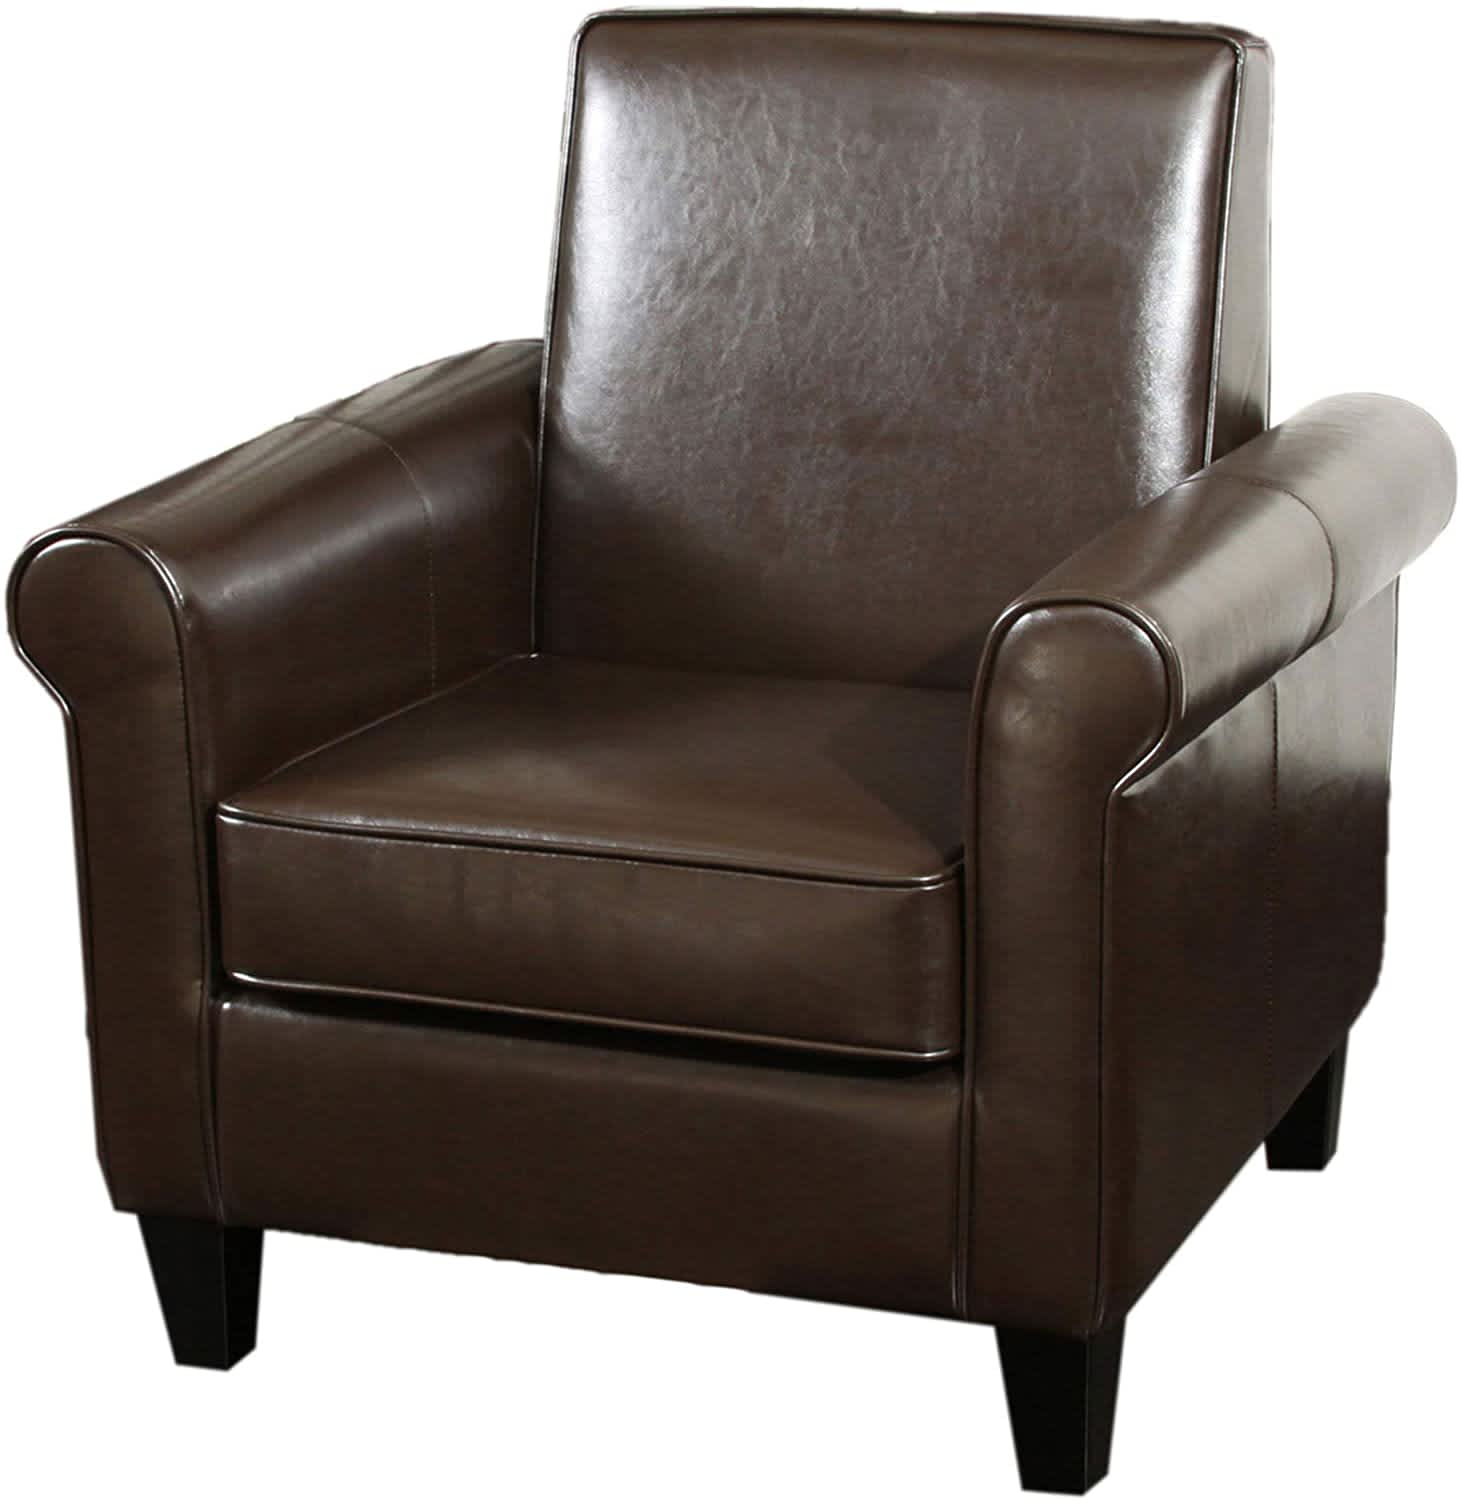 Christopher Knight Home Freemont Bonded Leather Club Chair